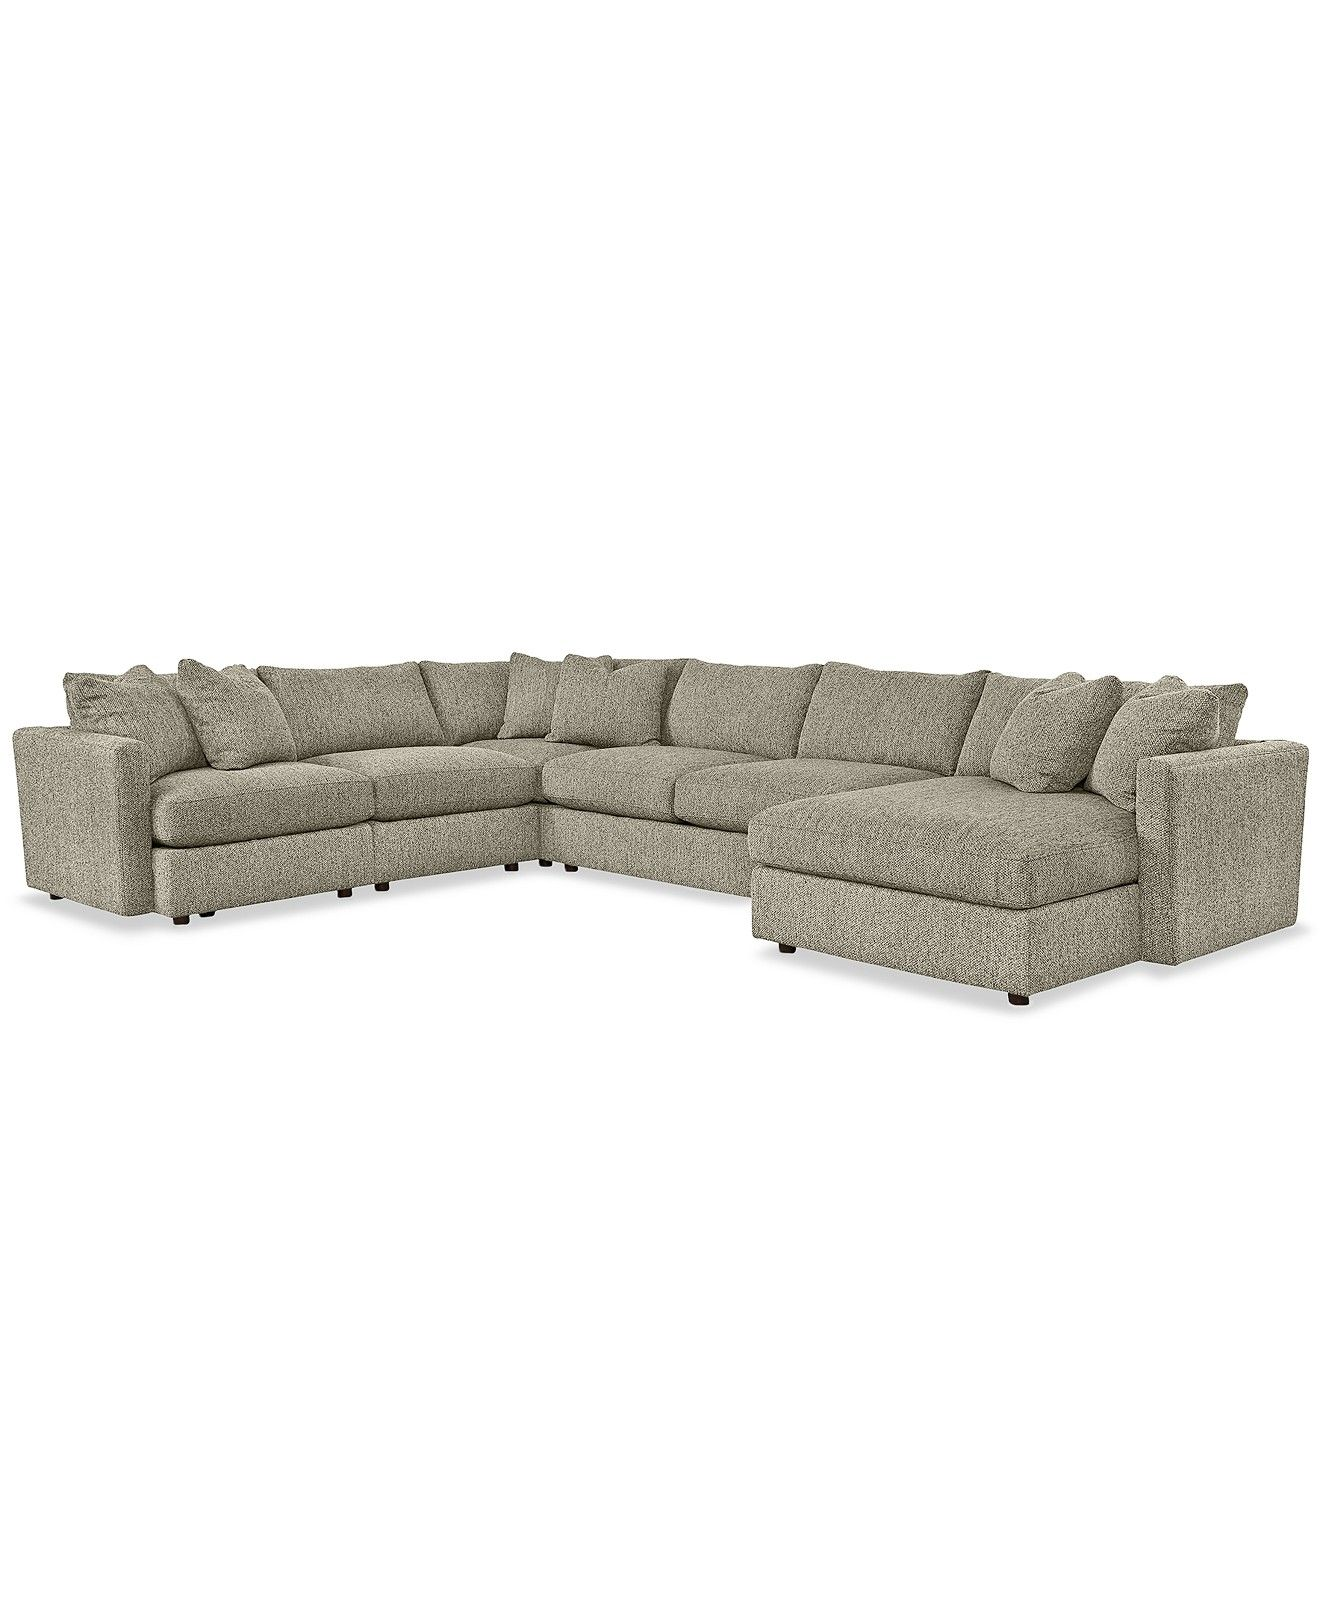 Clinton fabric 5 piece chaise sectional custom colors sectional sofas furniture macys